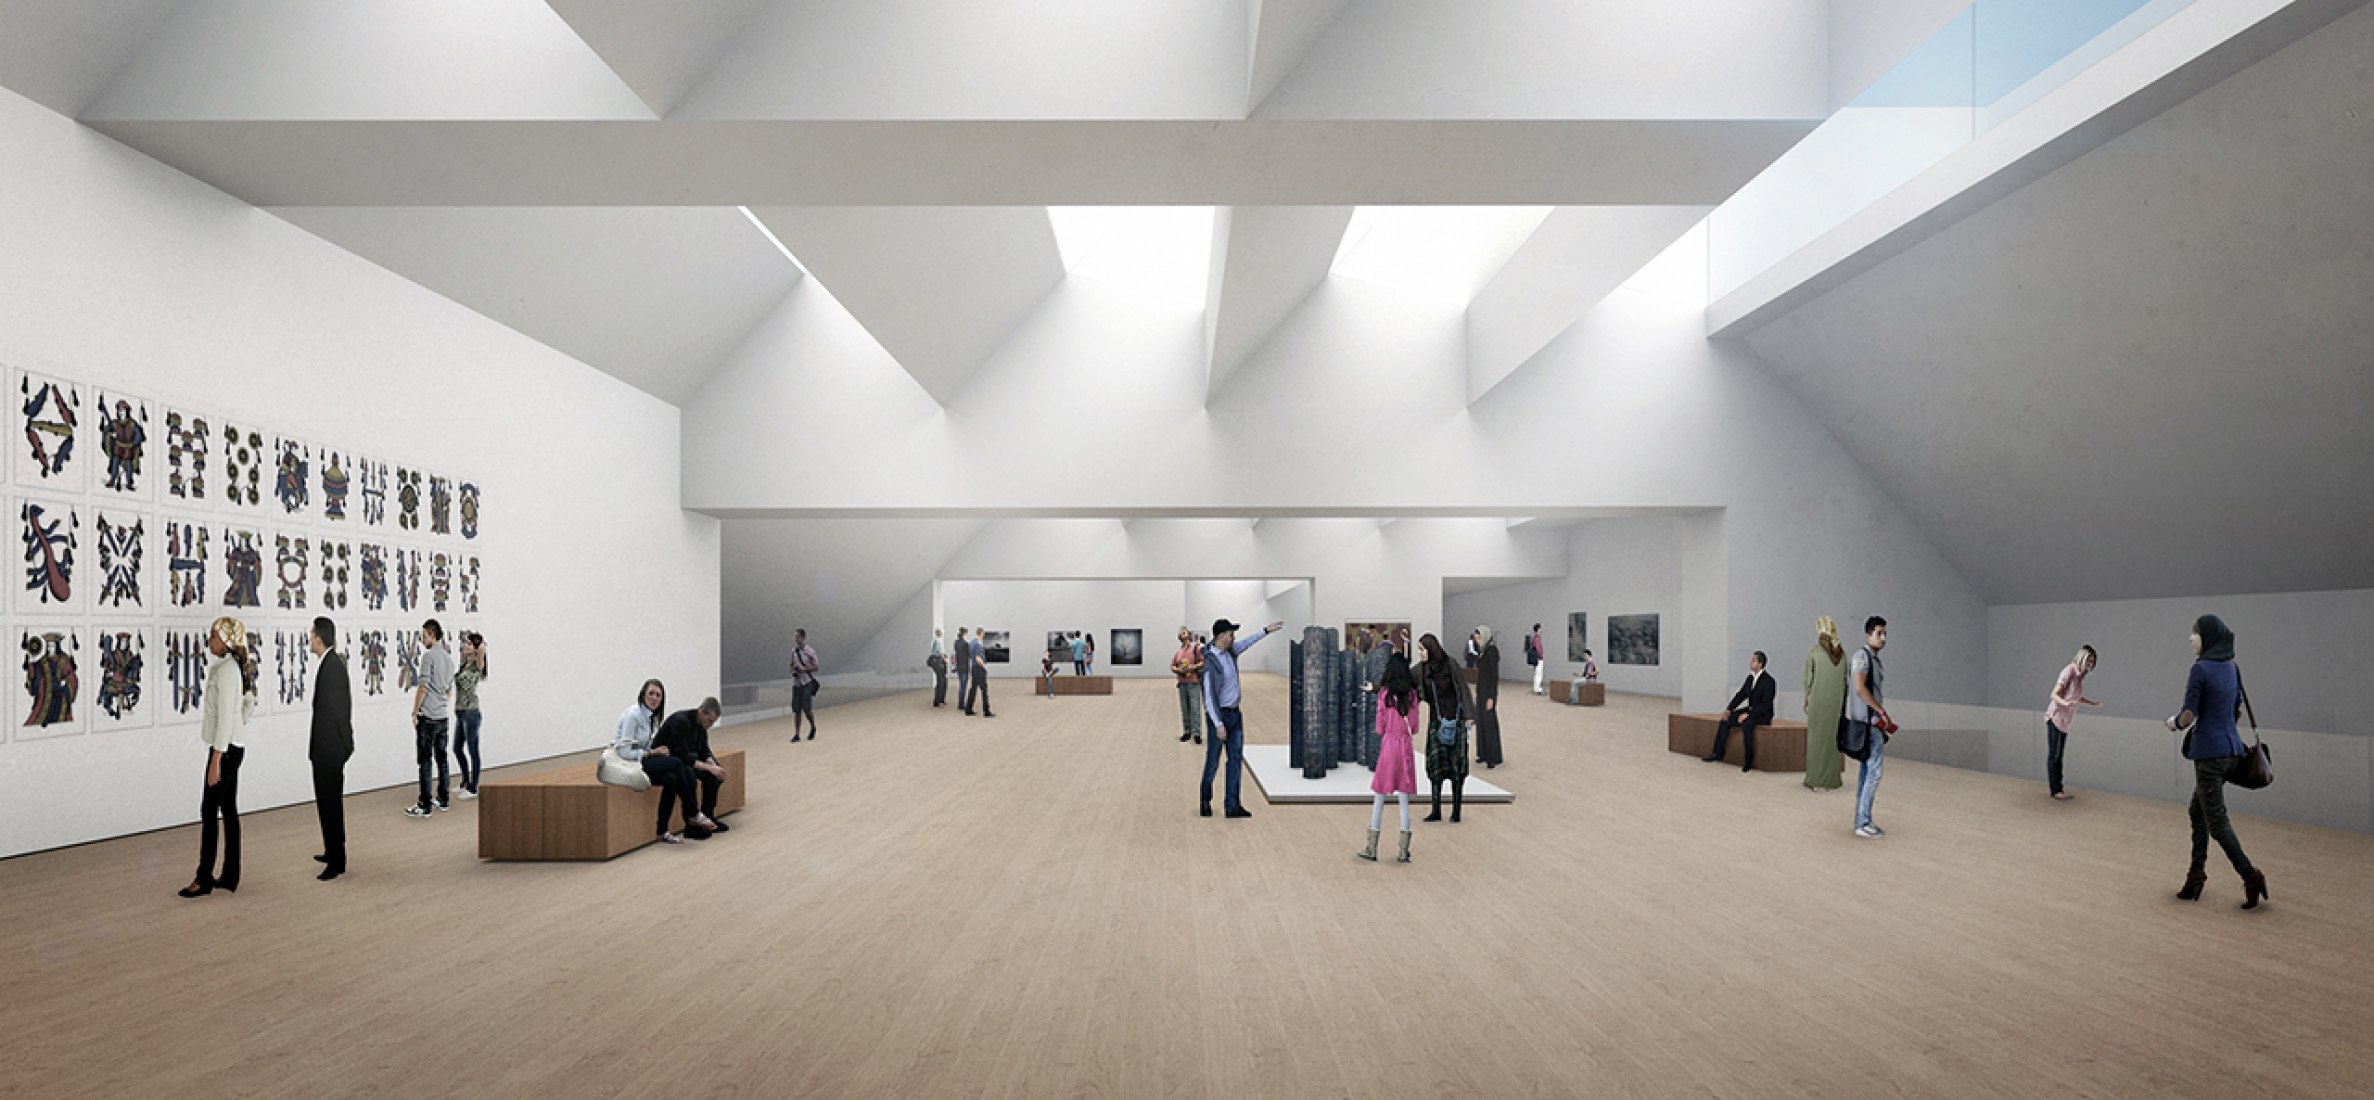 Exhibition space. New MACAAL in Marrakech by Nieto Sobejano Arquitectos. Image courtesy of Nieto Sobejano Arquitectos.